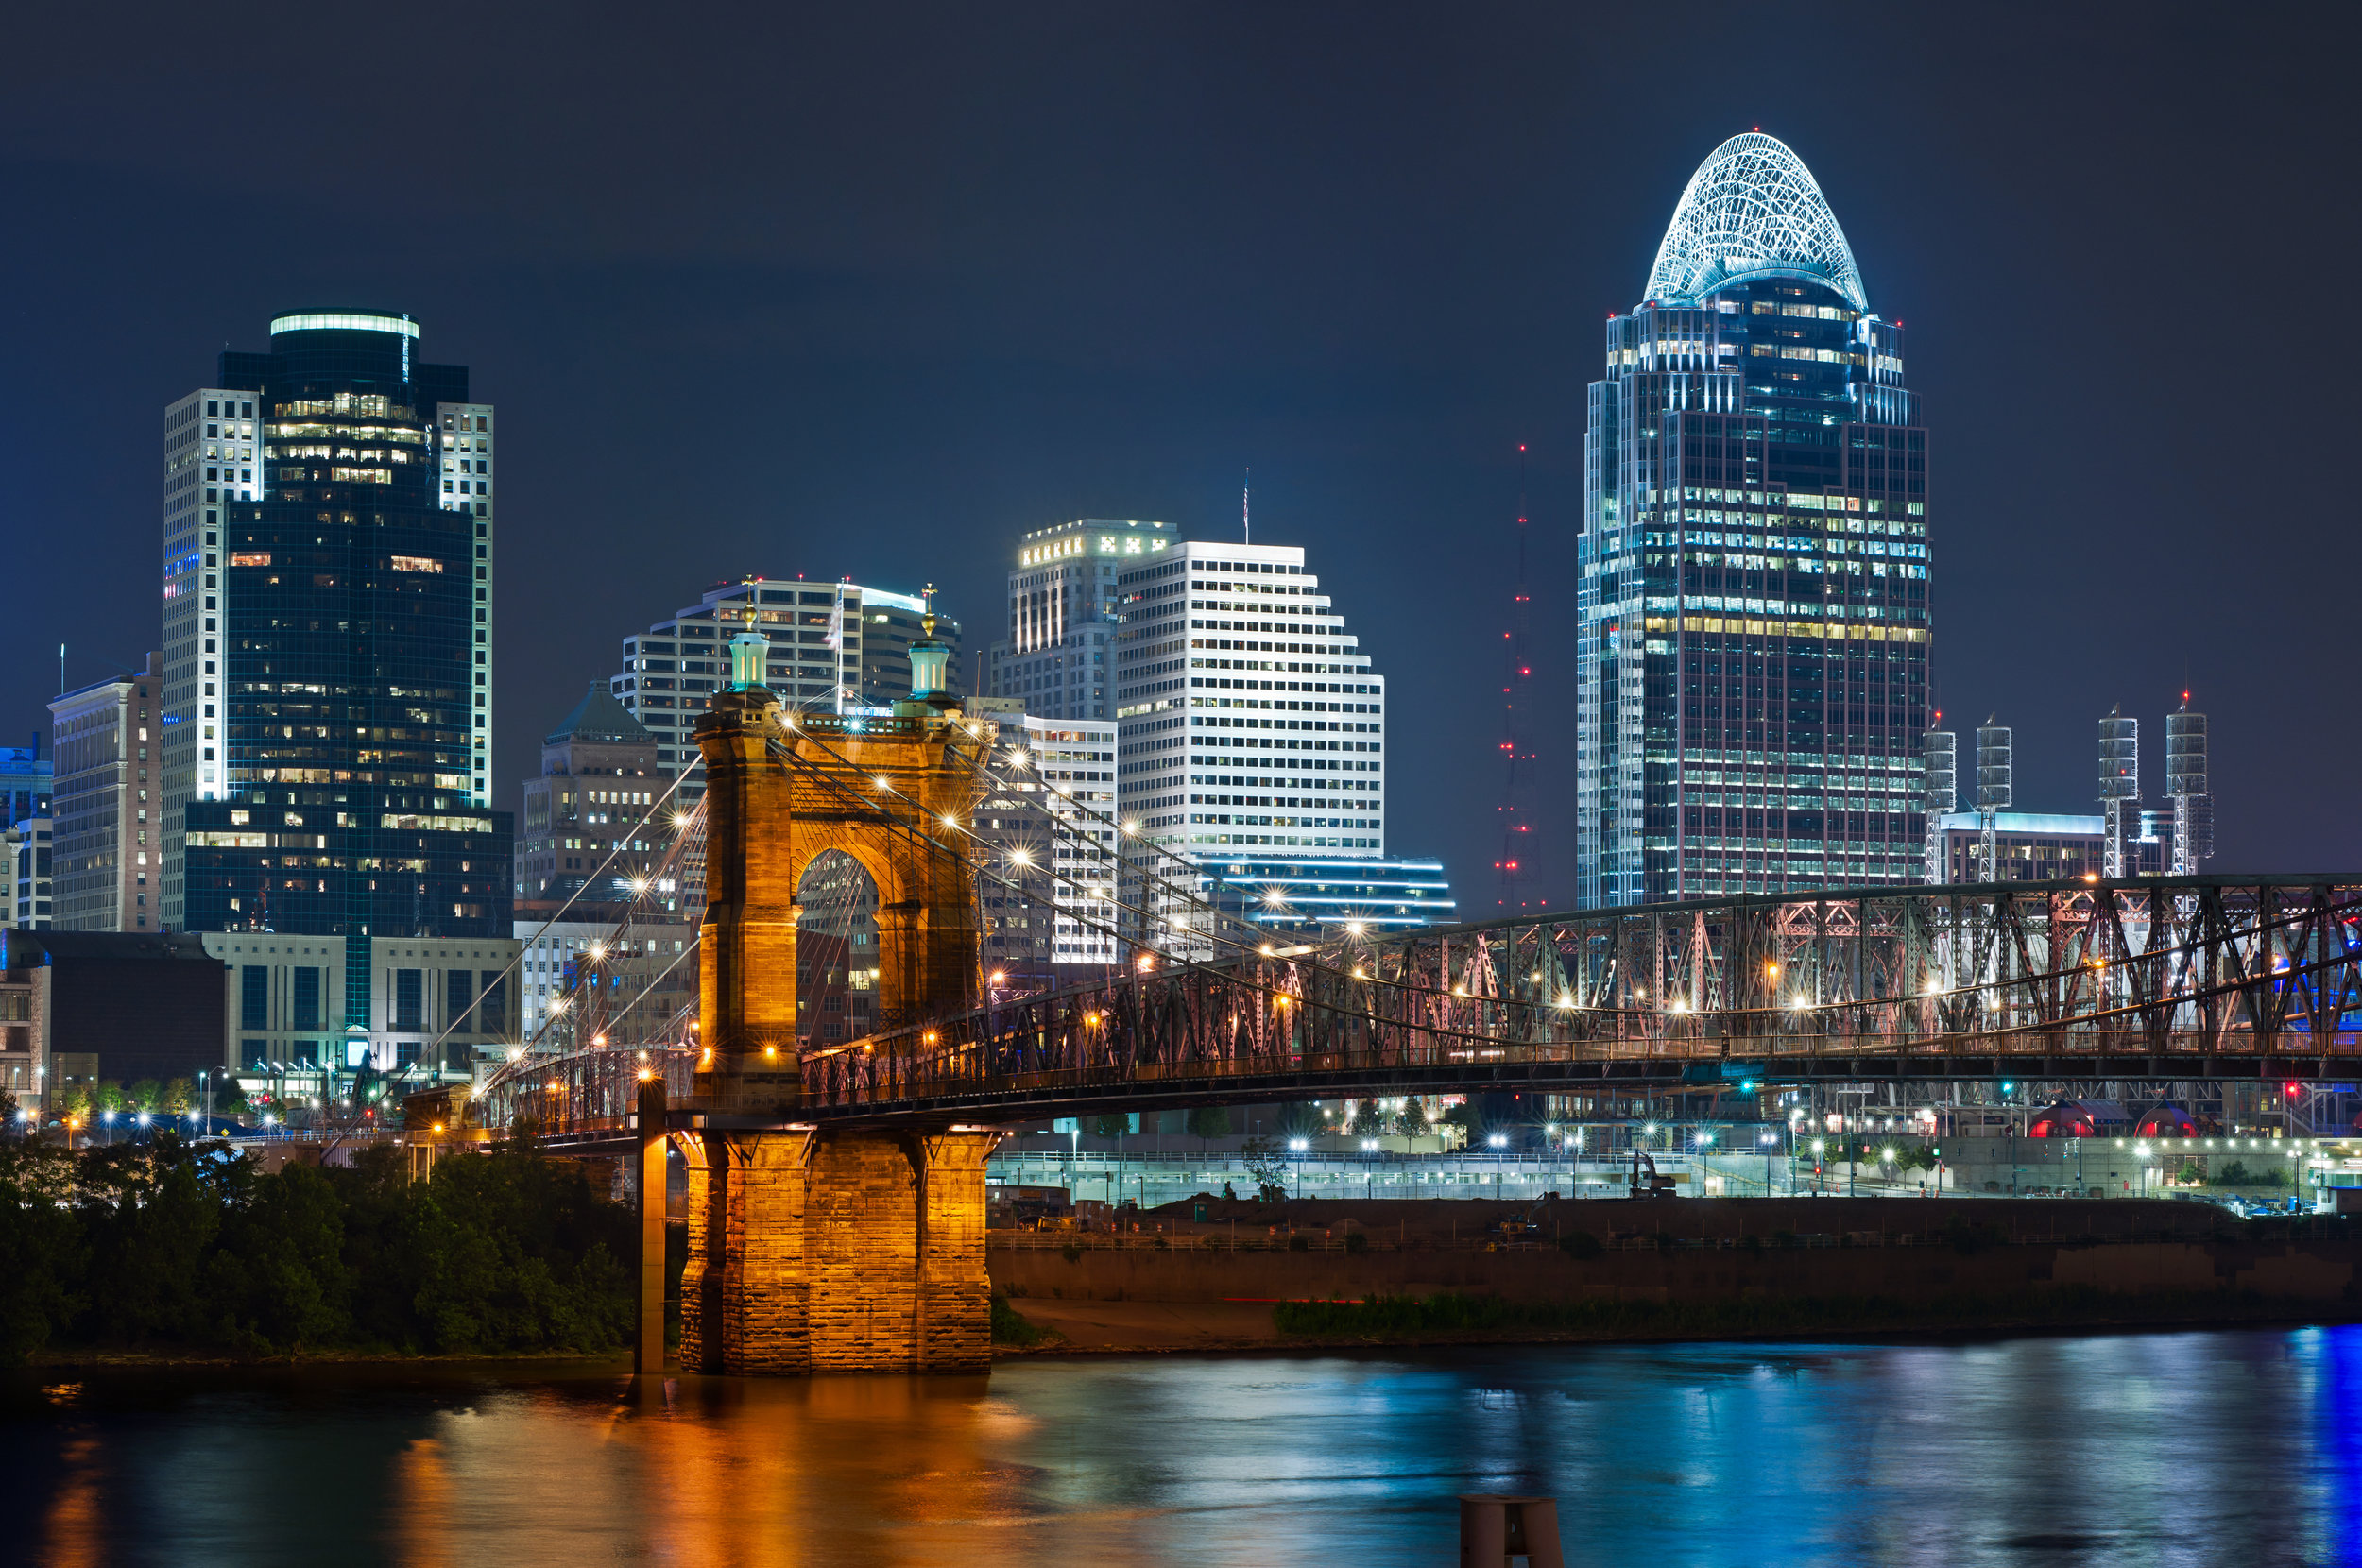 Cincinnati, Ohio - Divine is headquartered in Cincinnati, Ohio. We love calling this city home! Cincinnati takes pride in its humble beginnings and strives to be a leader in innovation. Divine is proud to serve the Cincinnati community with professional valet at the touch of a button.